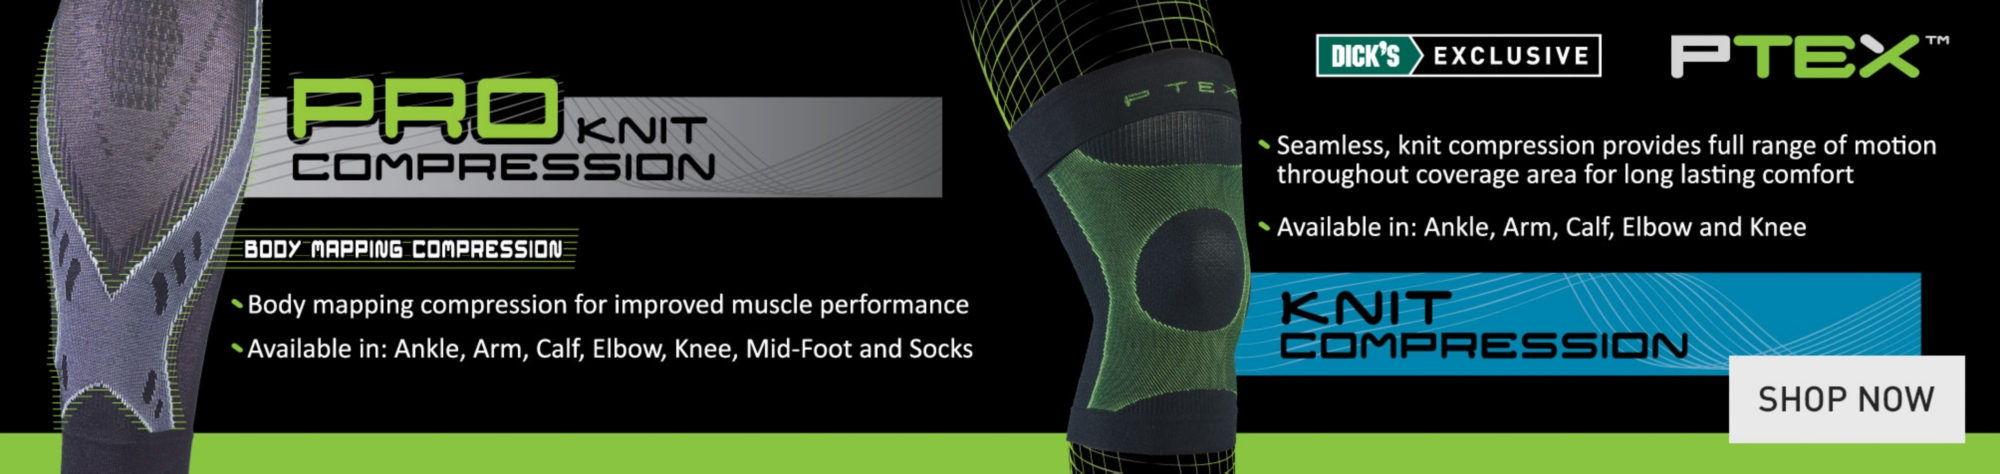 Shop PTEX Knit Compression